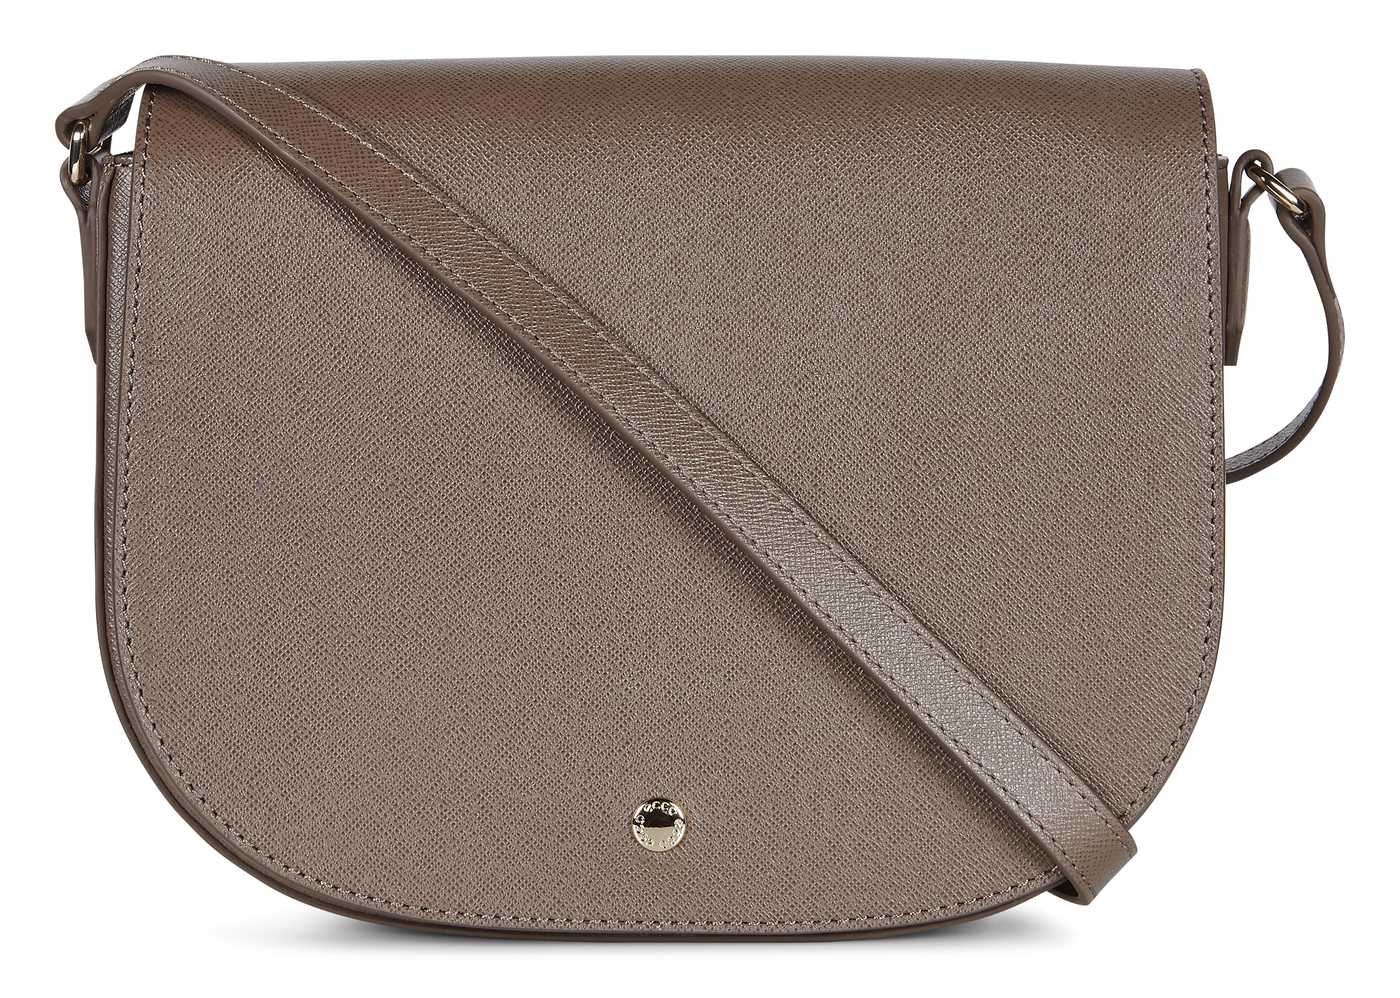 ECCO IOLA Medium Saddle Bag